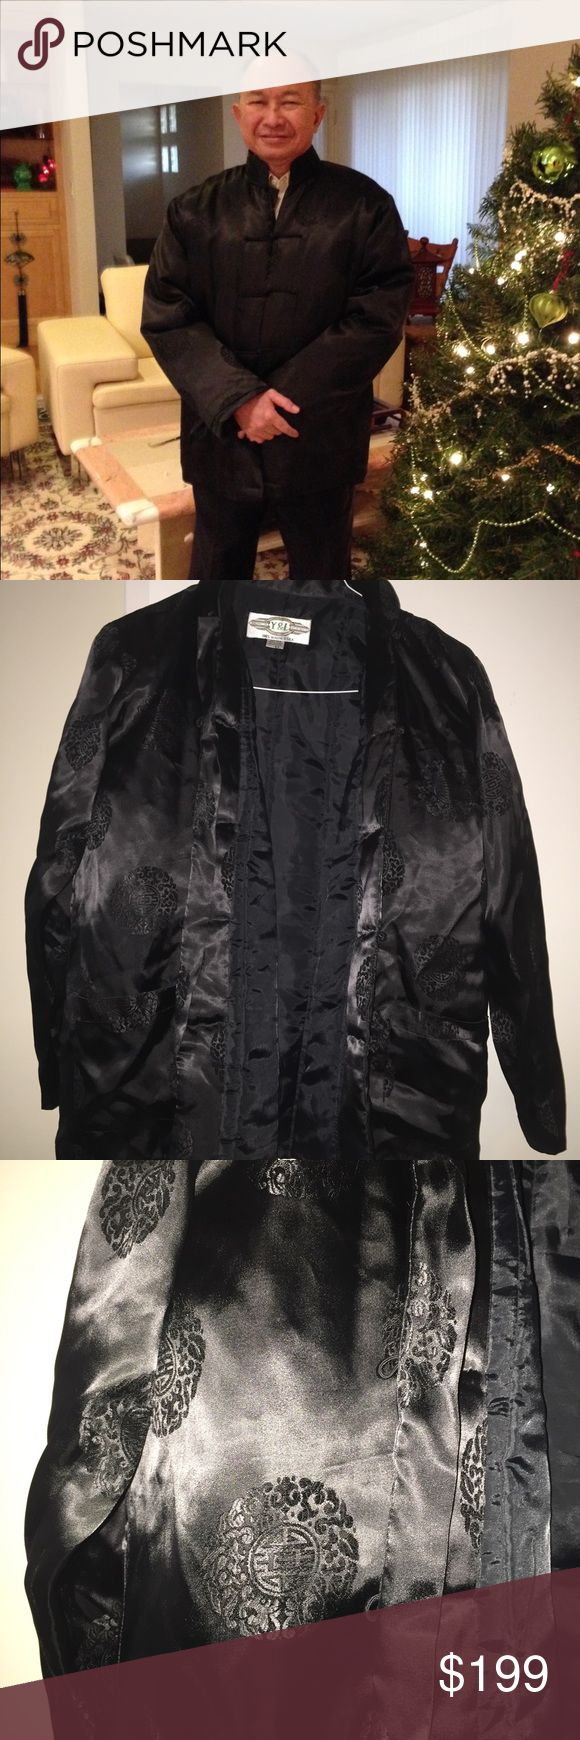 Director John woo jacket This is donated from the closet of movie director John Woo who directed FACE OFF AND MISSION IMPOSSIBLE TWO as well as many others .  Majority of proceeds go towards cyclic vomitting syndrome research  Size XL Chinese puffer coat Y&l Jackets & Coats Puffers